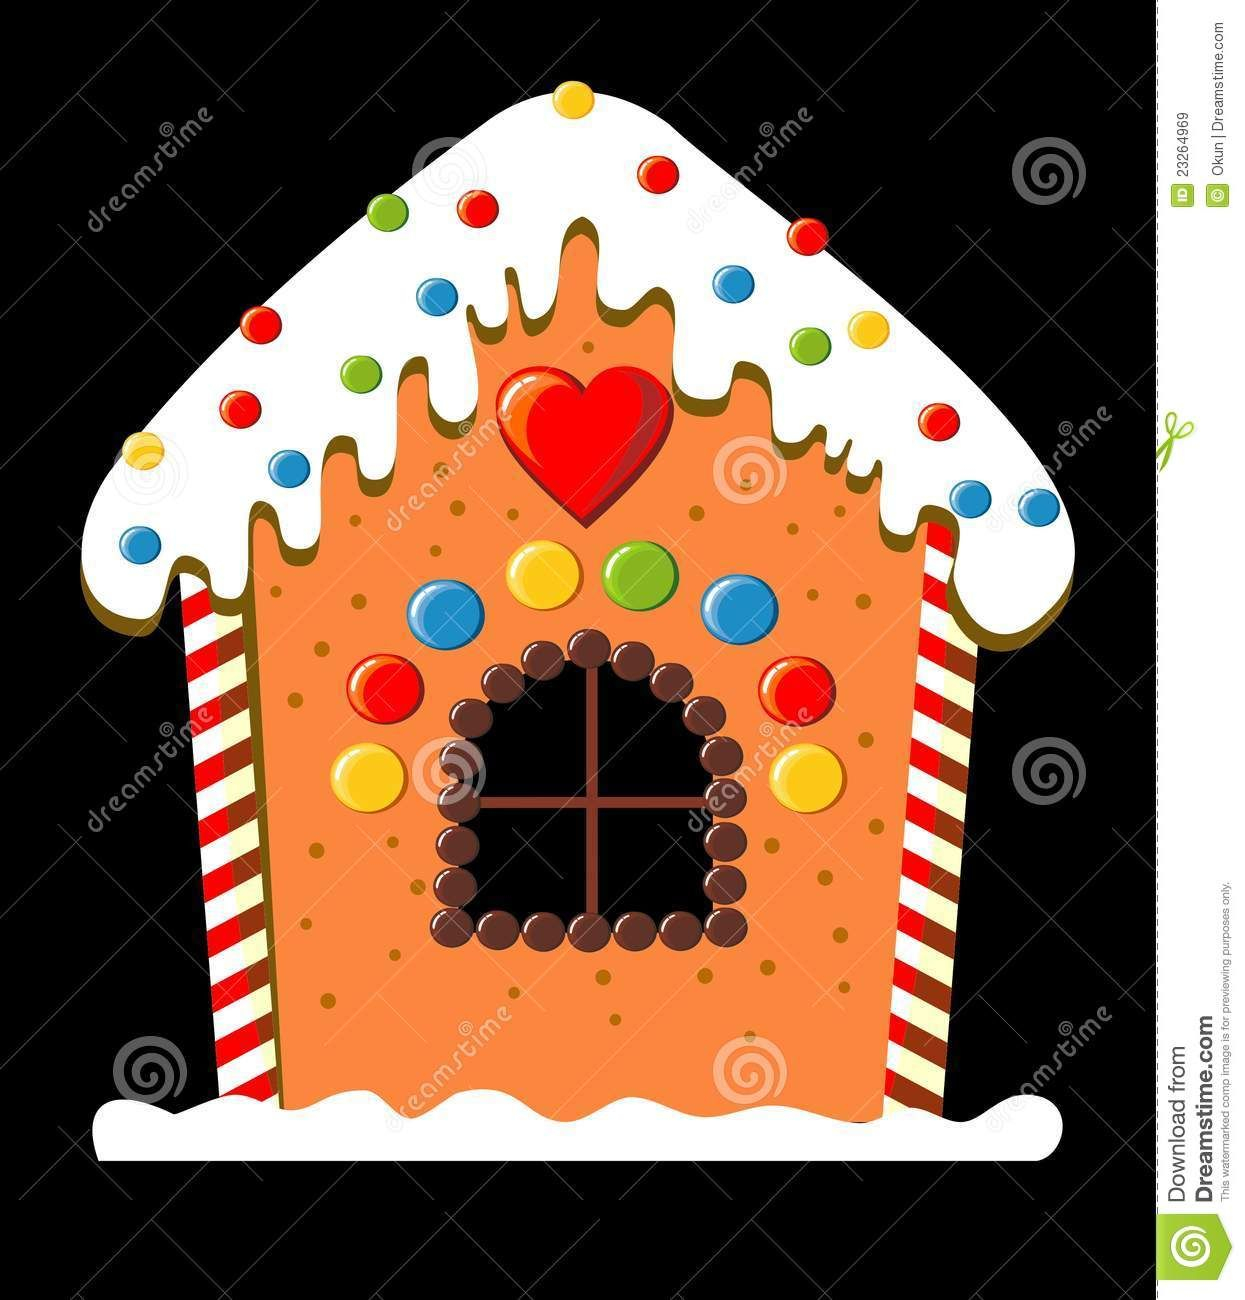 Gingerbread clipart chocolate house. Candy cartoon decorated with